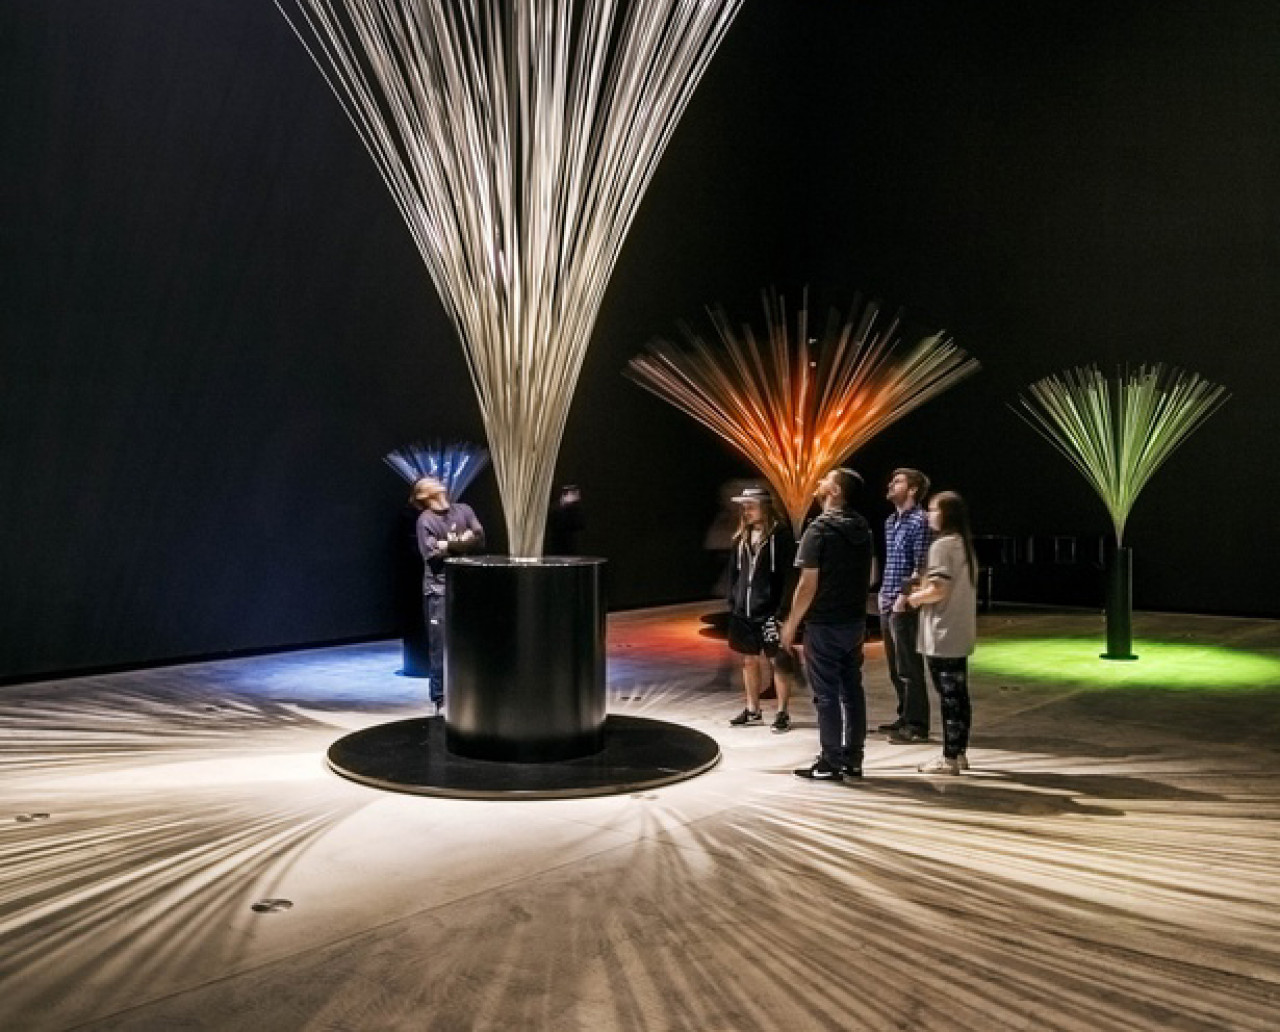 Some of Lye's kinetic exhibits: Fountain III from 1976, made from stainless steel rods. A motor rotates the metal rods, creating the illusion of a jet of water.